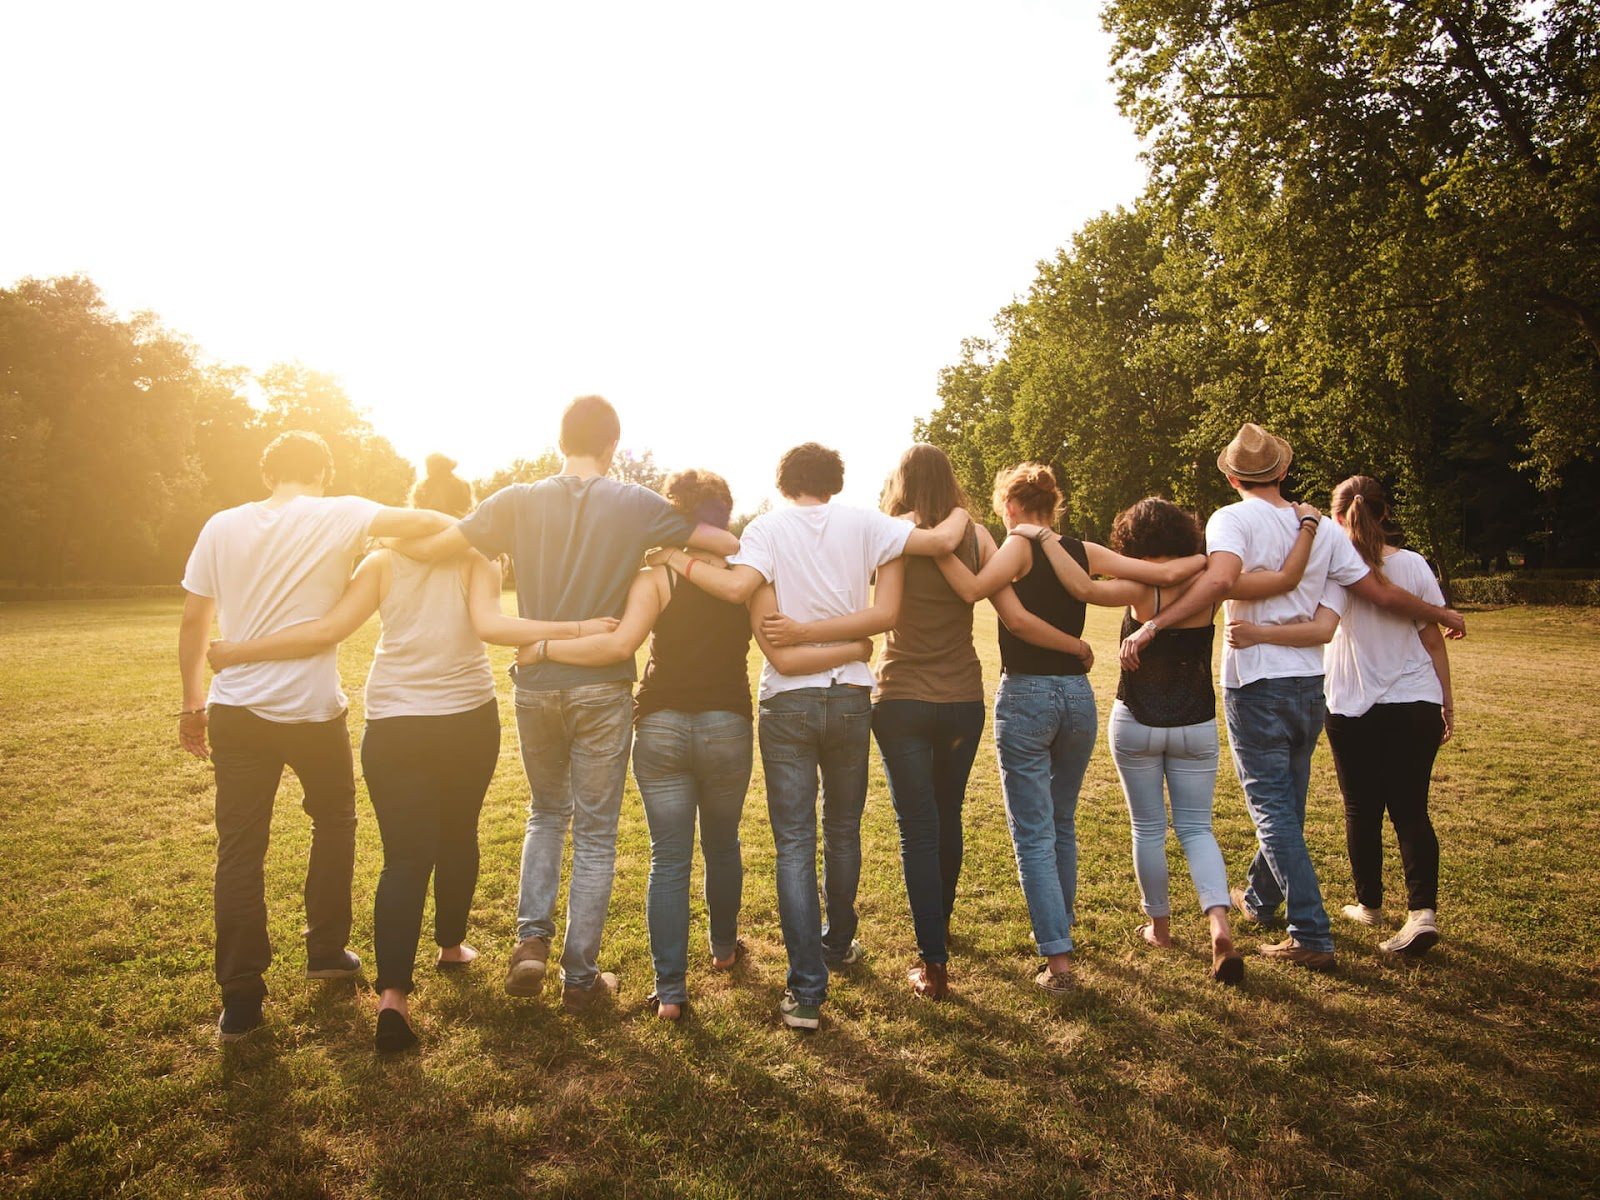 Group of friends waling with arms around each other